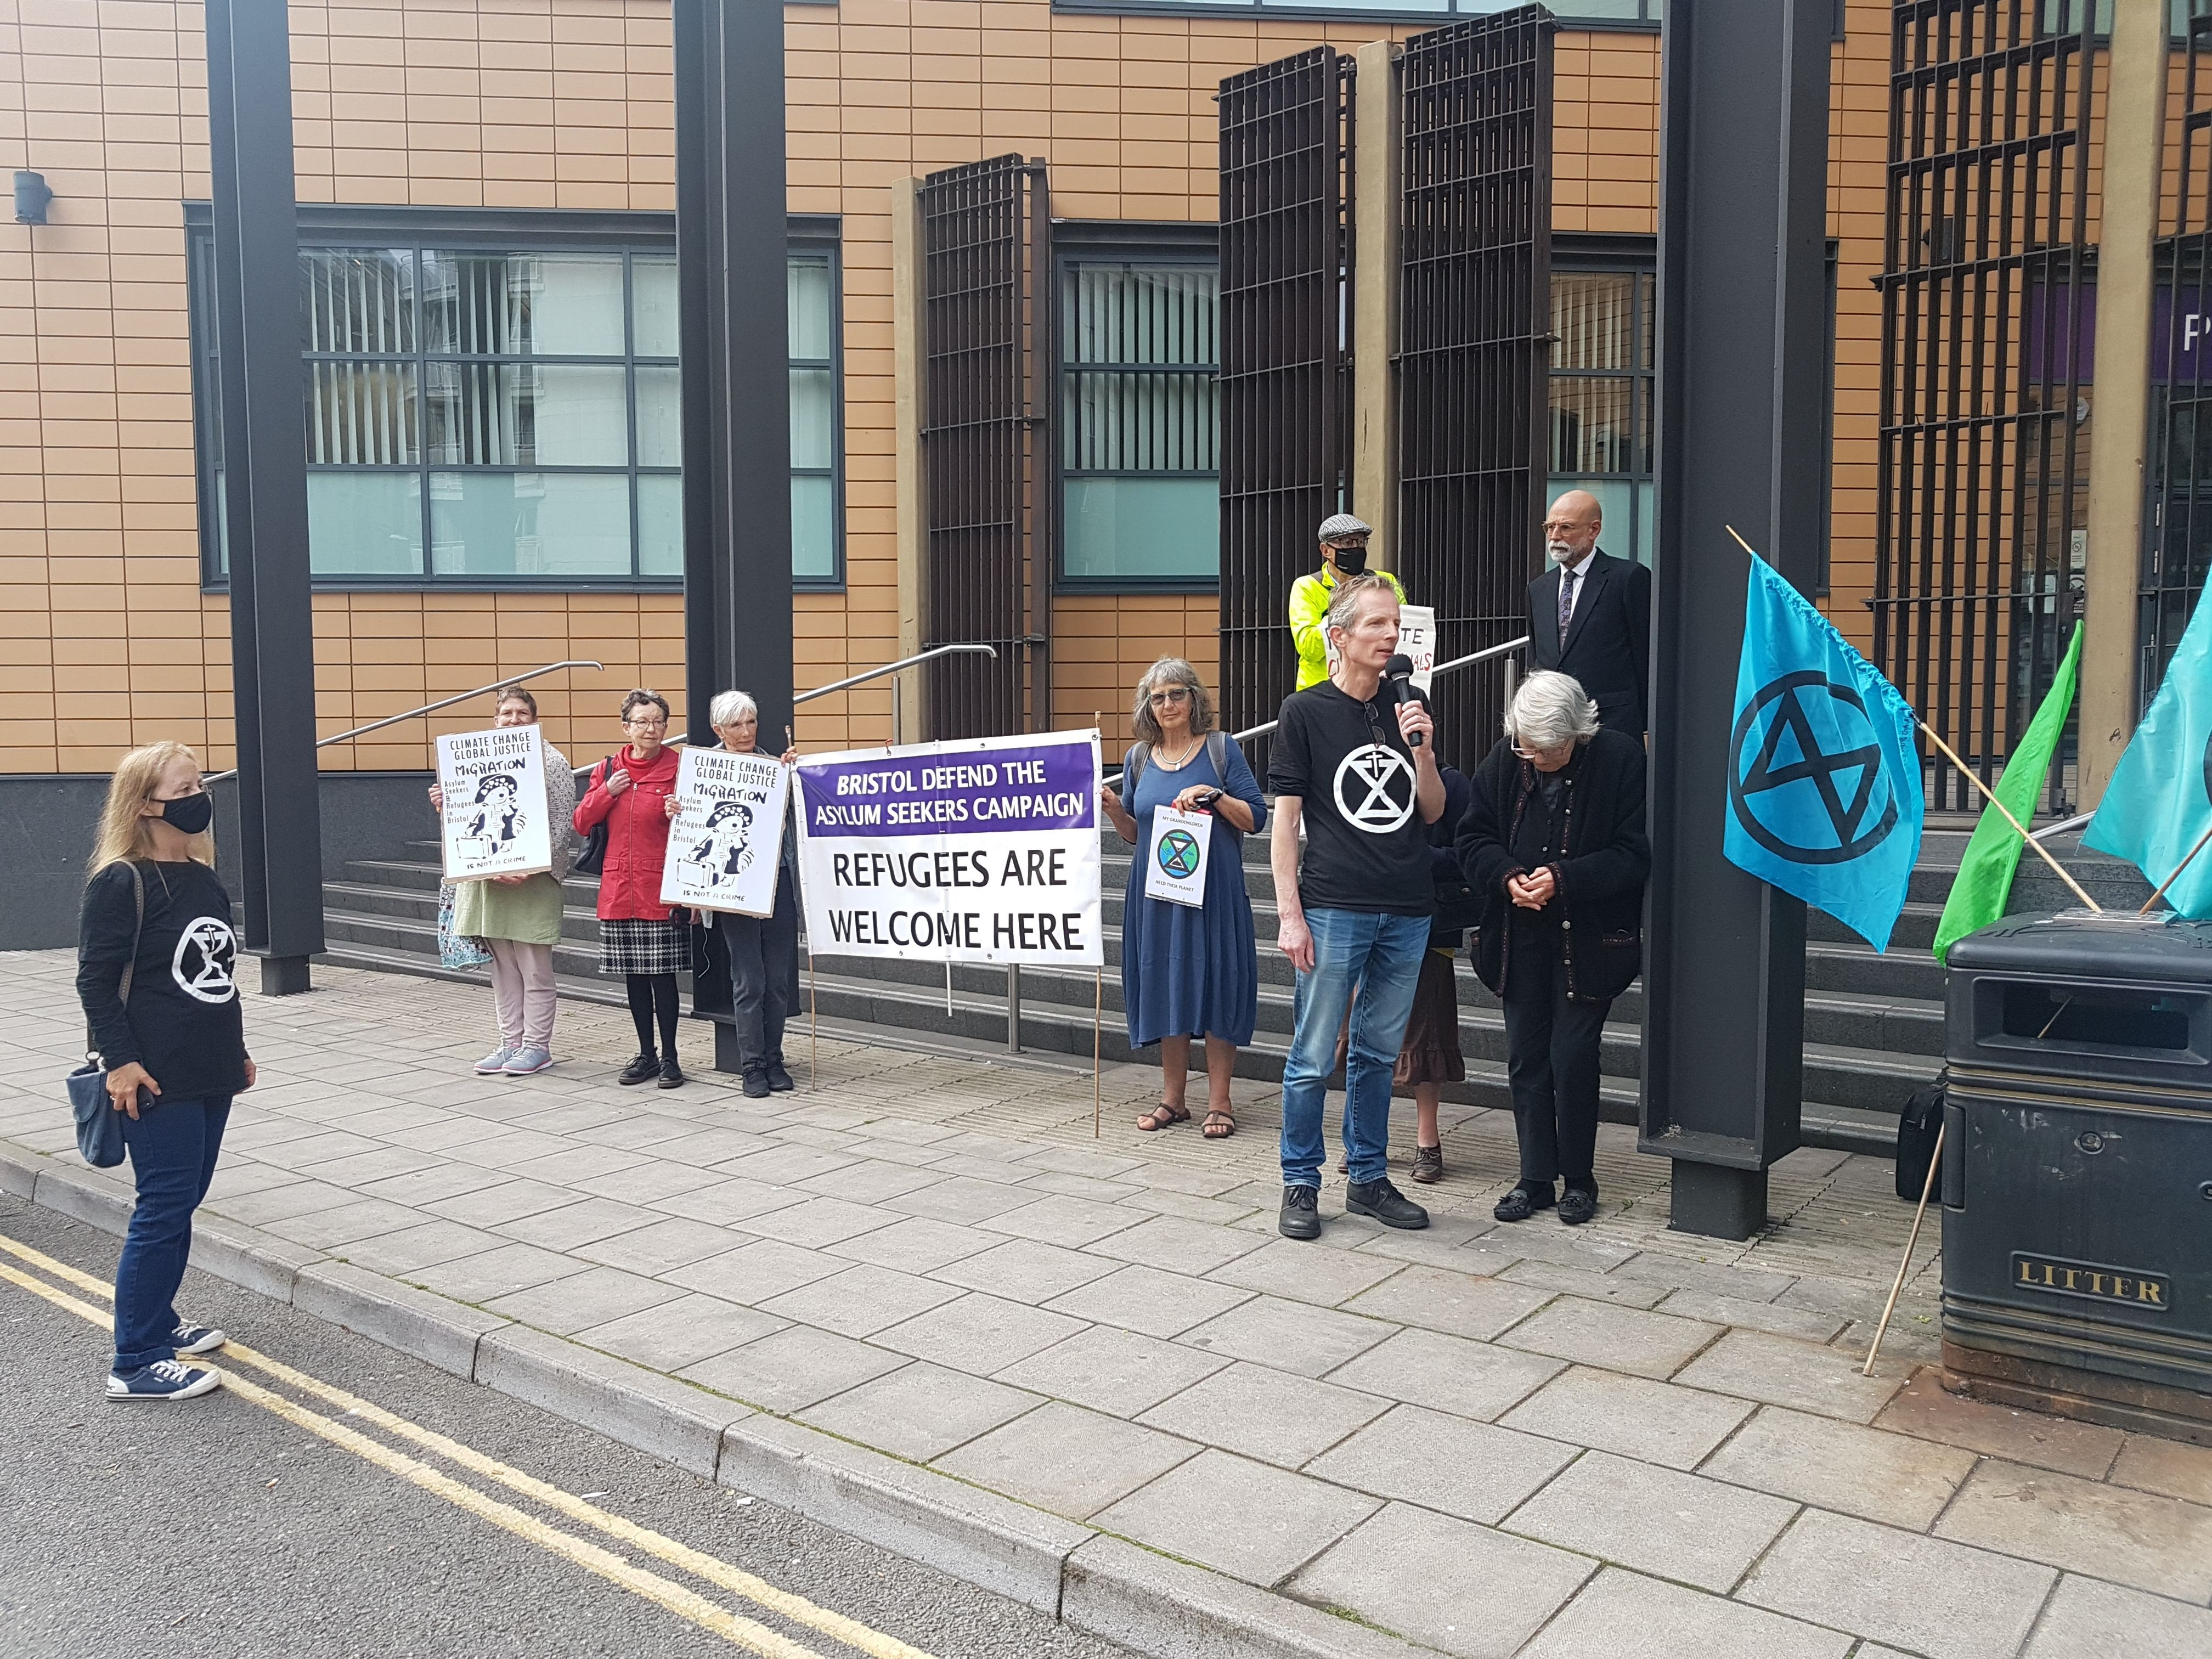 """Sue Parfitt and eight supporters stand outside the courthouse. A banner reads """"Refugees are welcome here"""""""